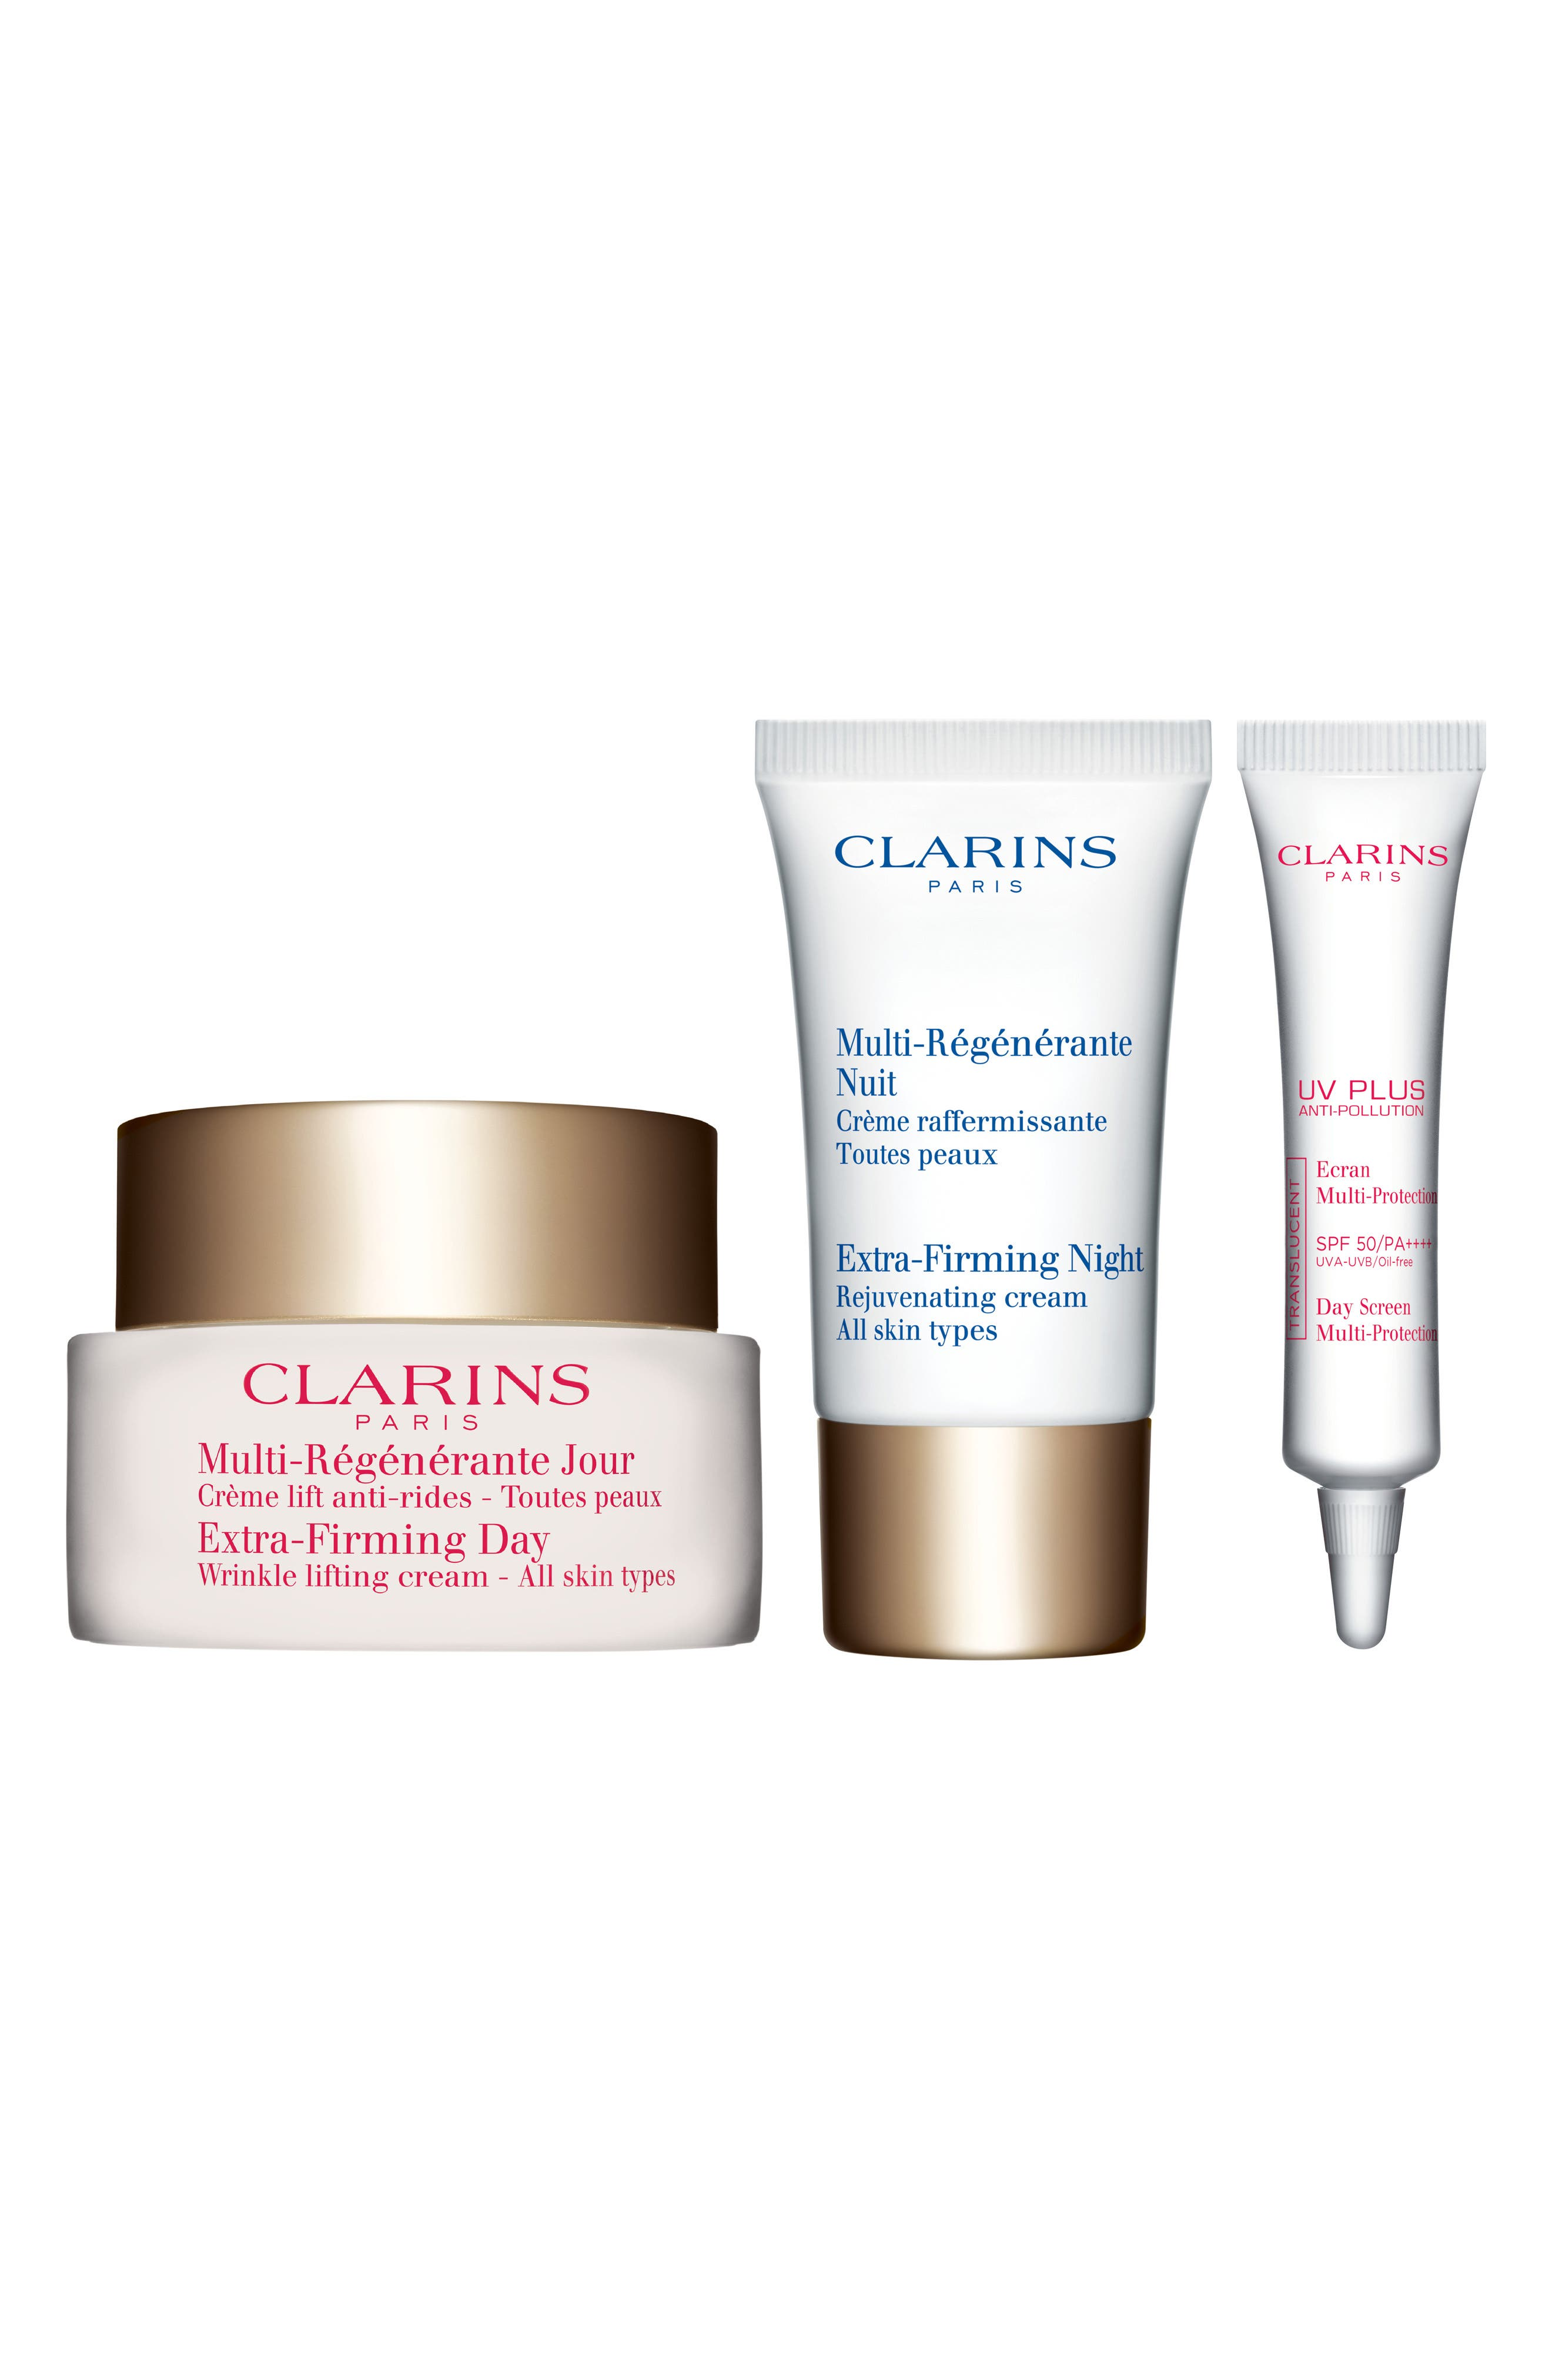 Main Image - Clarins Extra-Firming Trio (Over $121 Value)